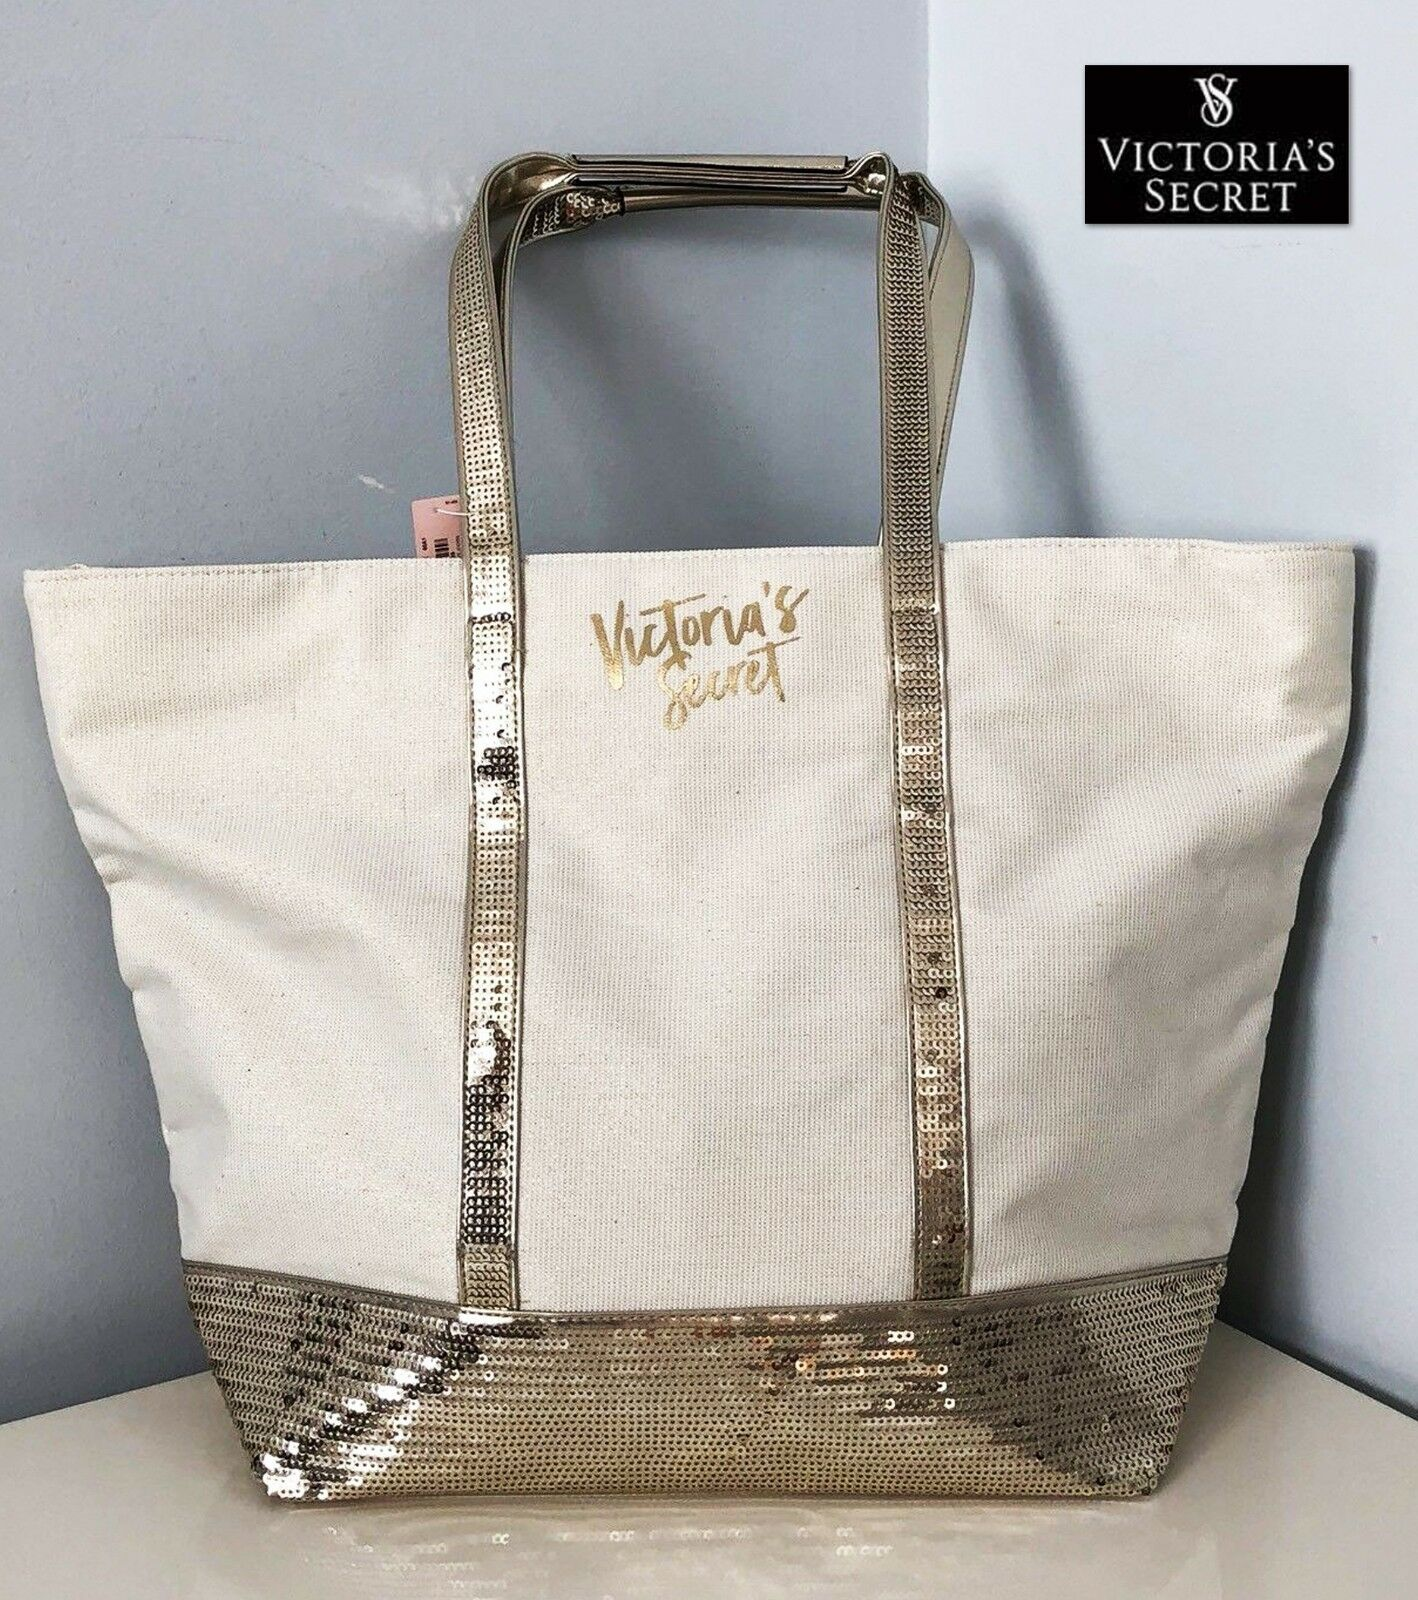 Details about NWT Victoria's Secret Tote Bag Cream Gold Sparkle Sequin Bling Great